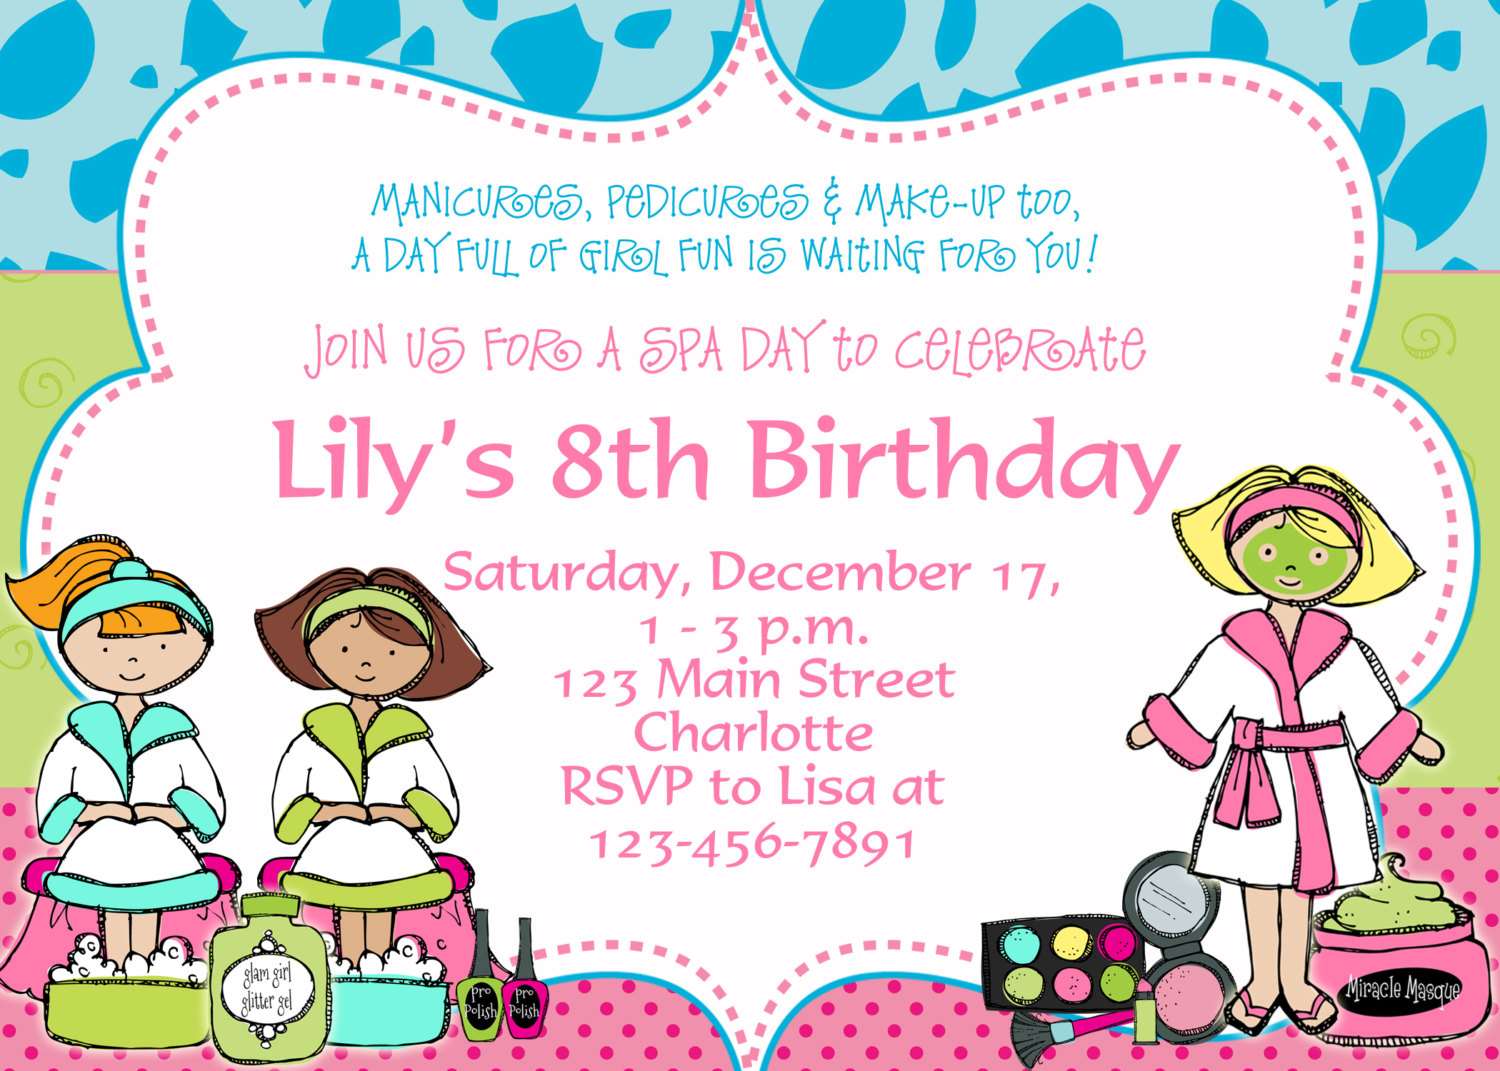 birthday gathering invitation ; amazing-create-birthday-party-invitations-check-our-beautiful-Birthday-invitation-to-use-as-reference-2